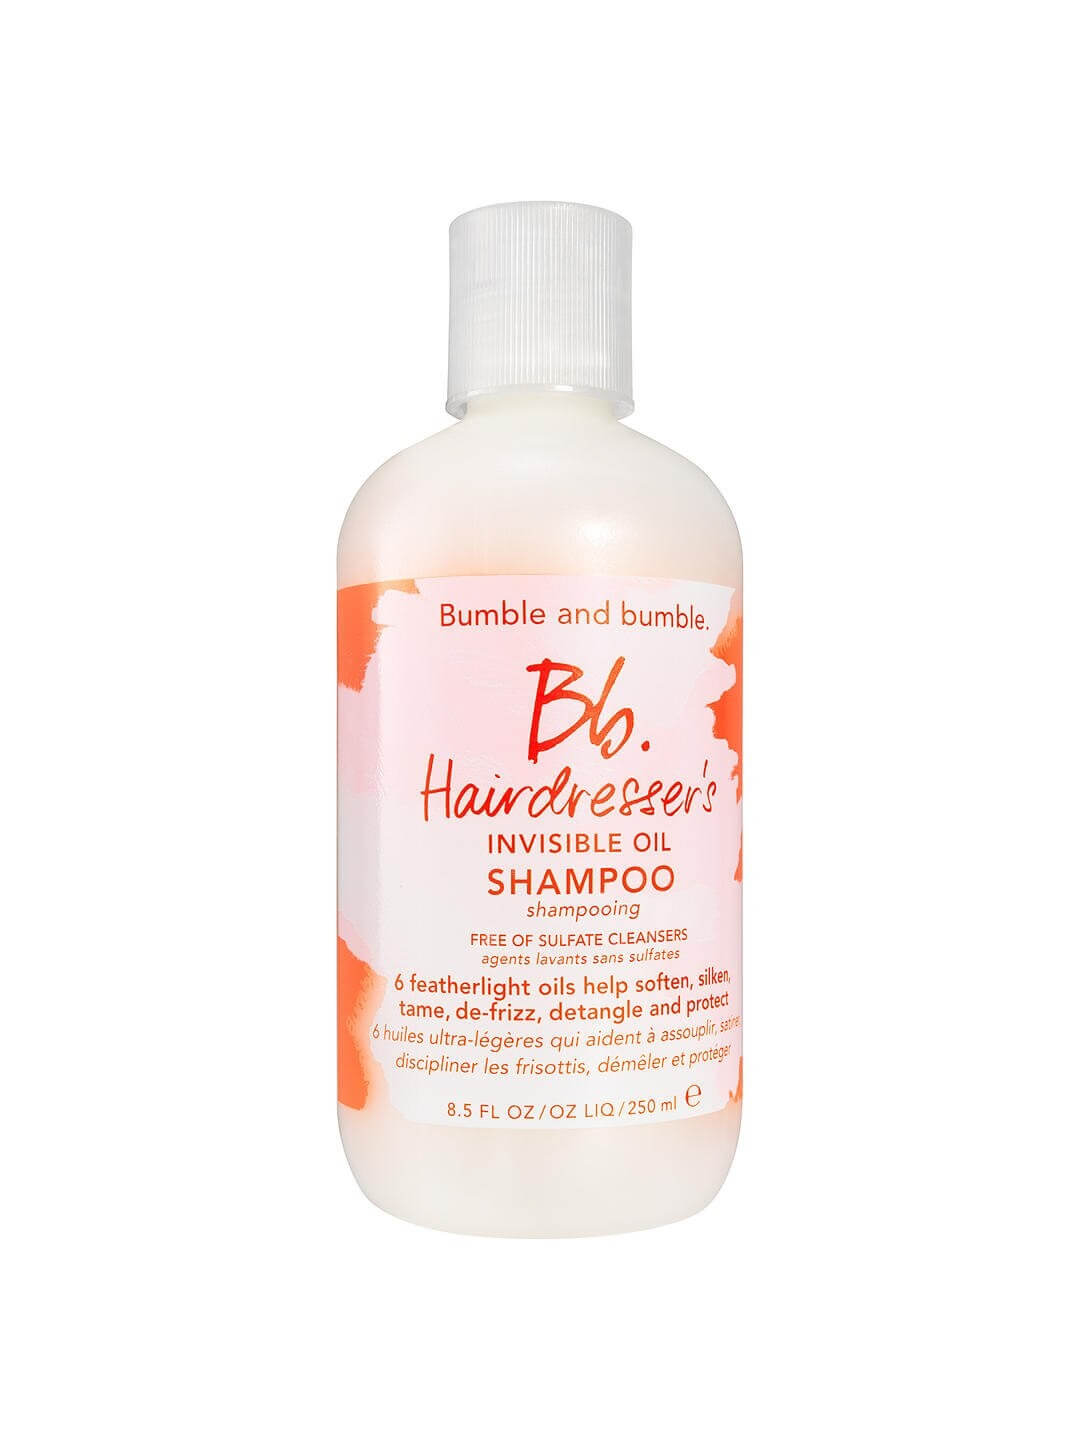 Bumble and bumble Hairdressers Invisible Oil Shampoo.